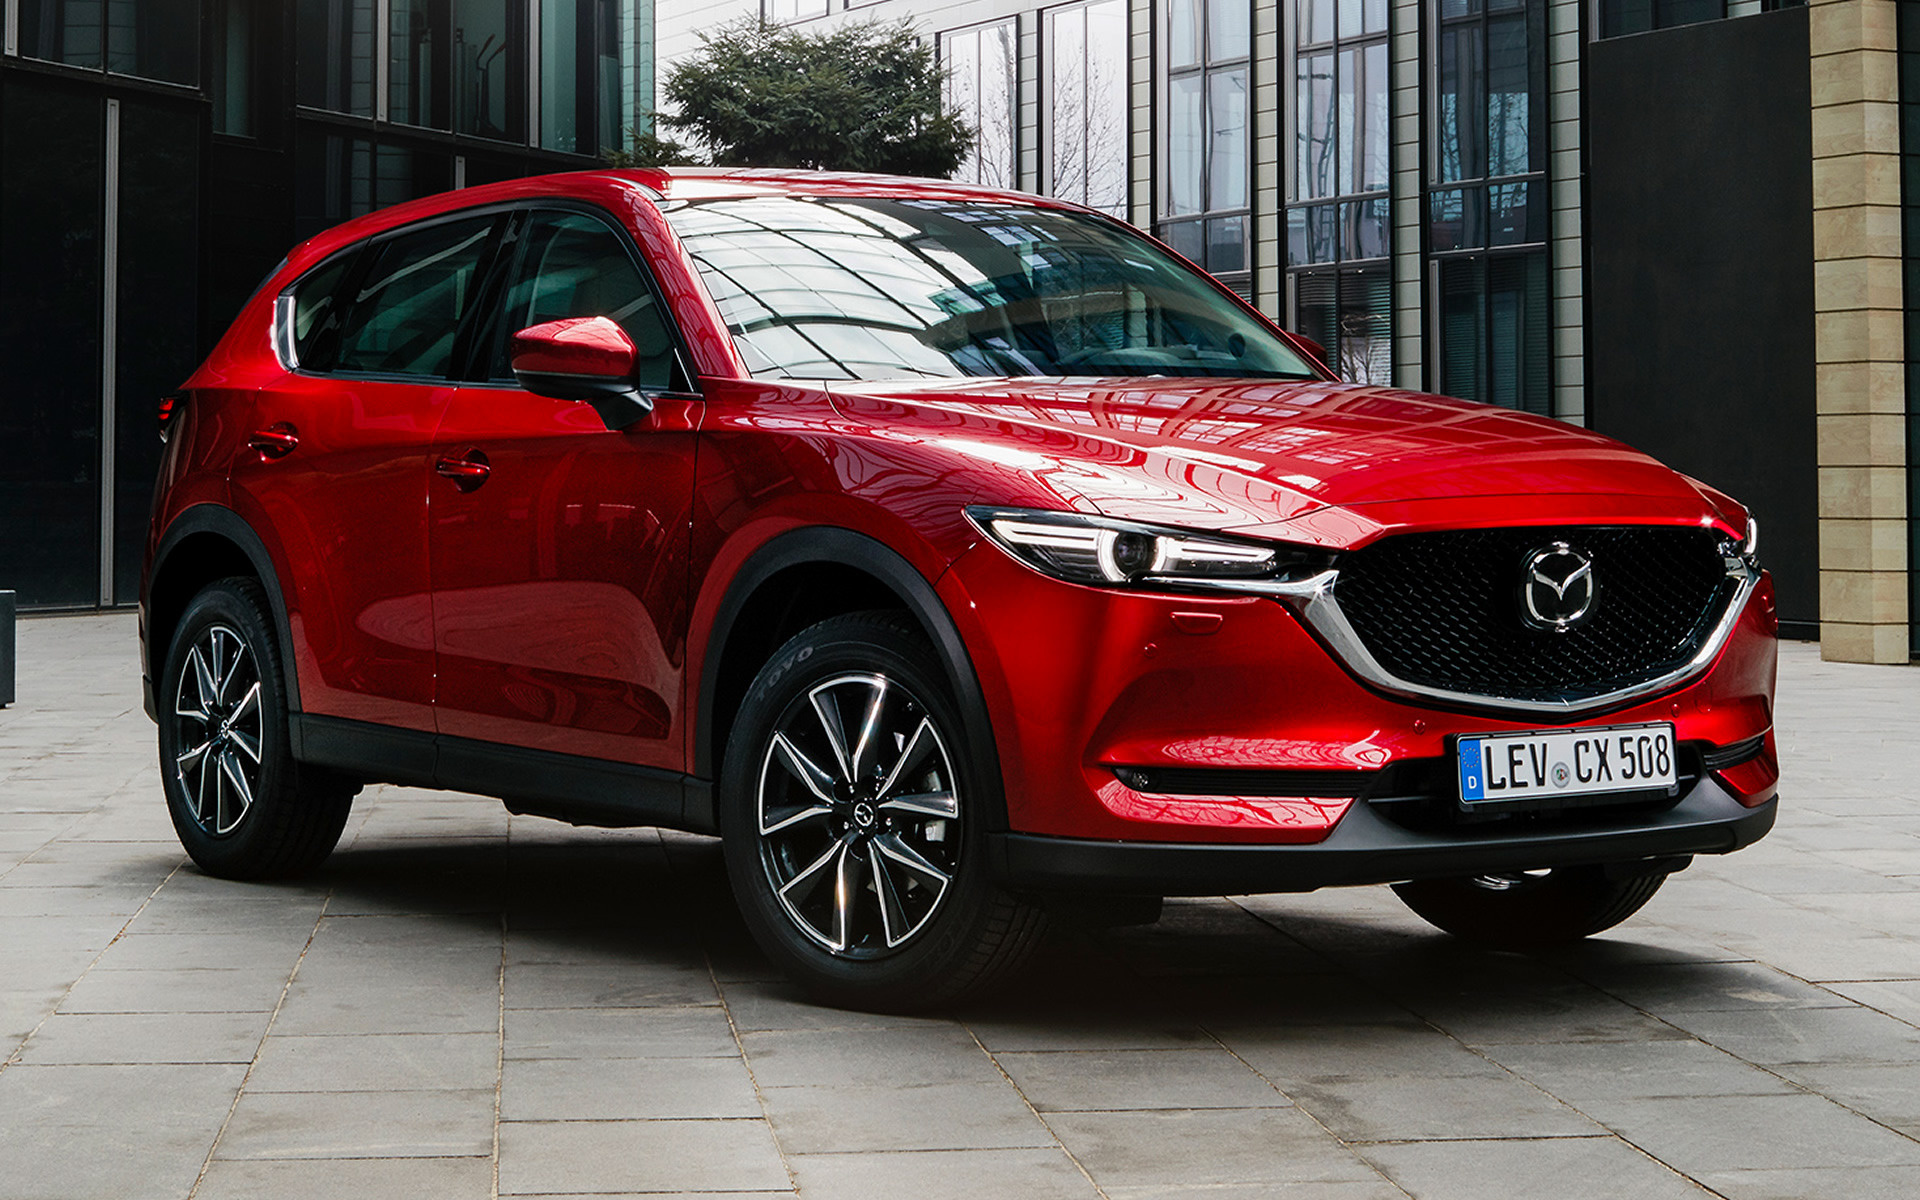 2017 Mazda CX-5 - Wallpapers and HD Images | Car Pixel